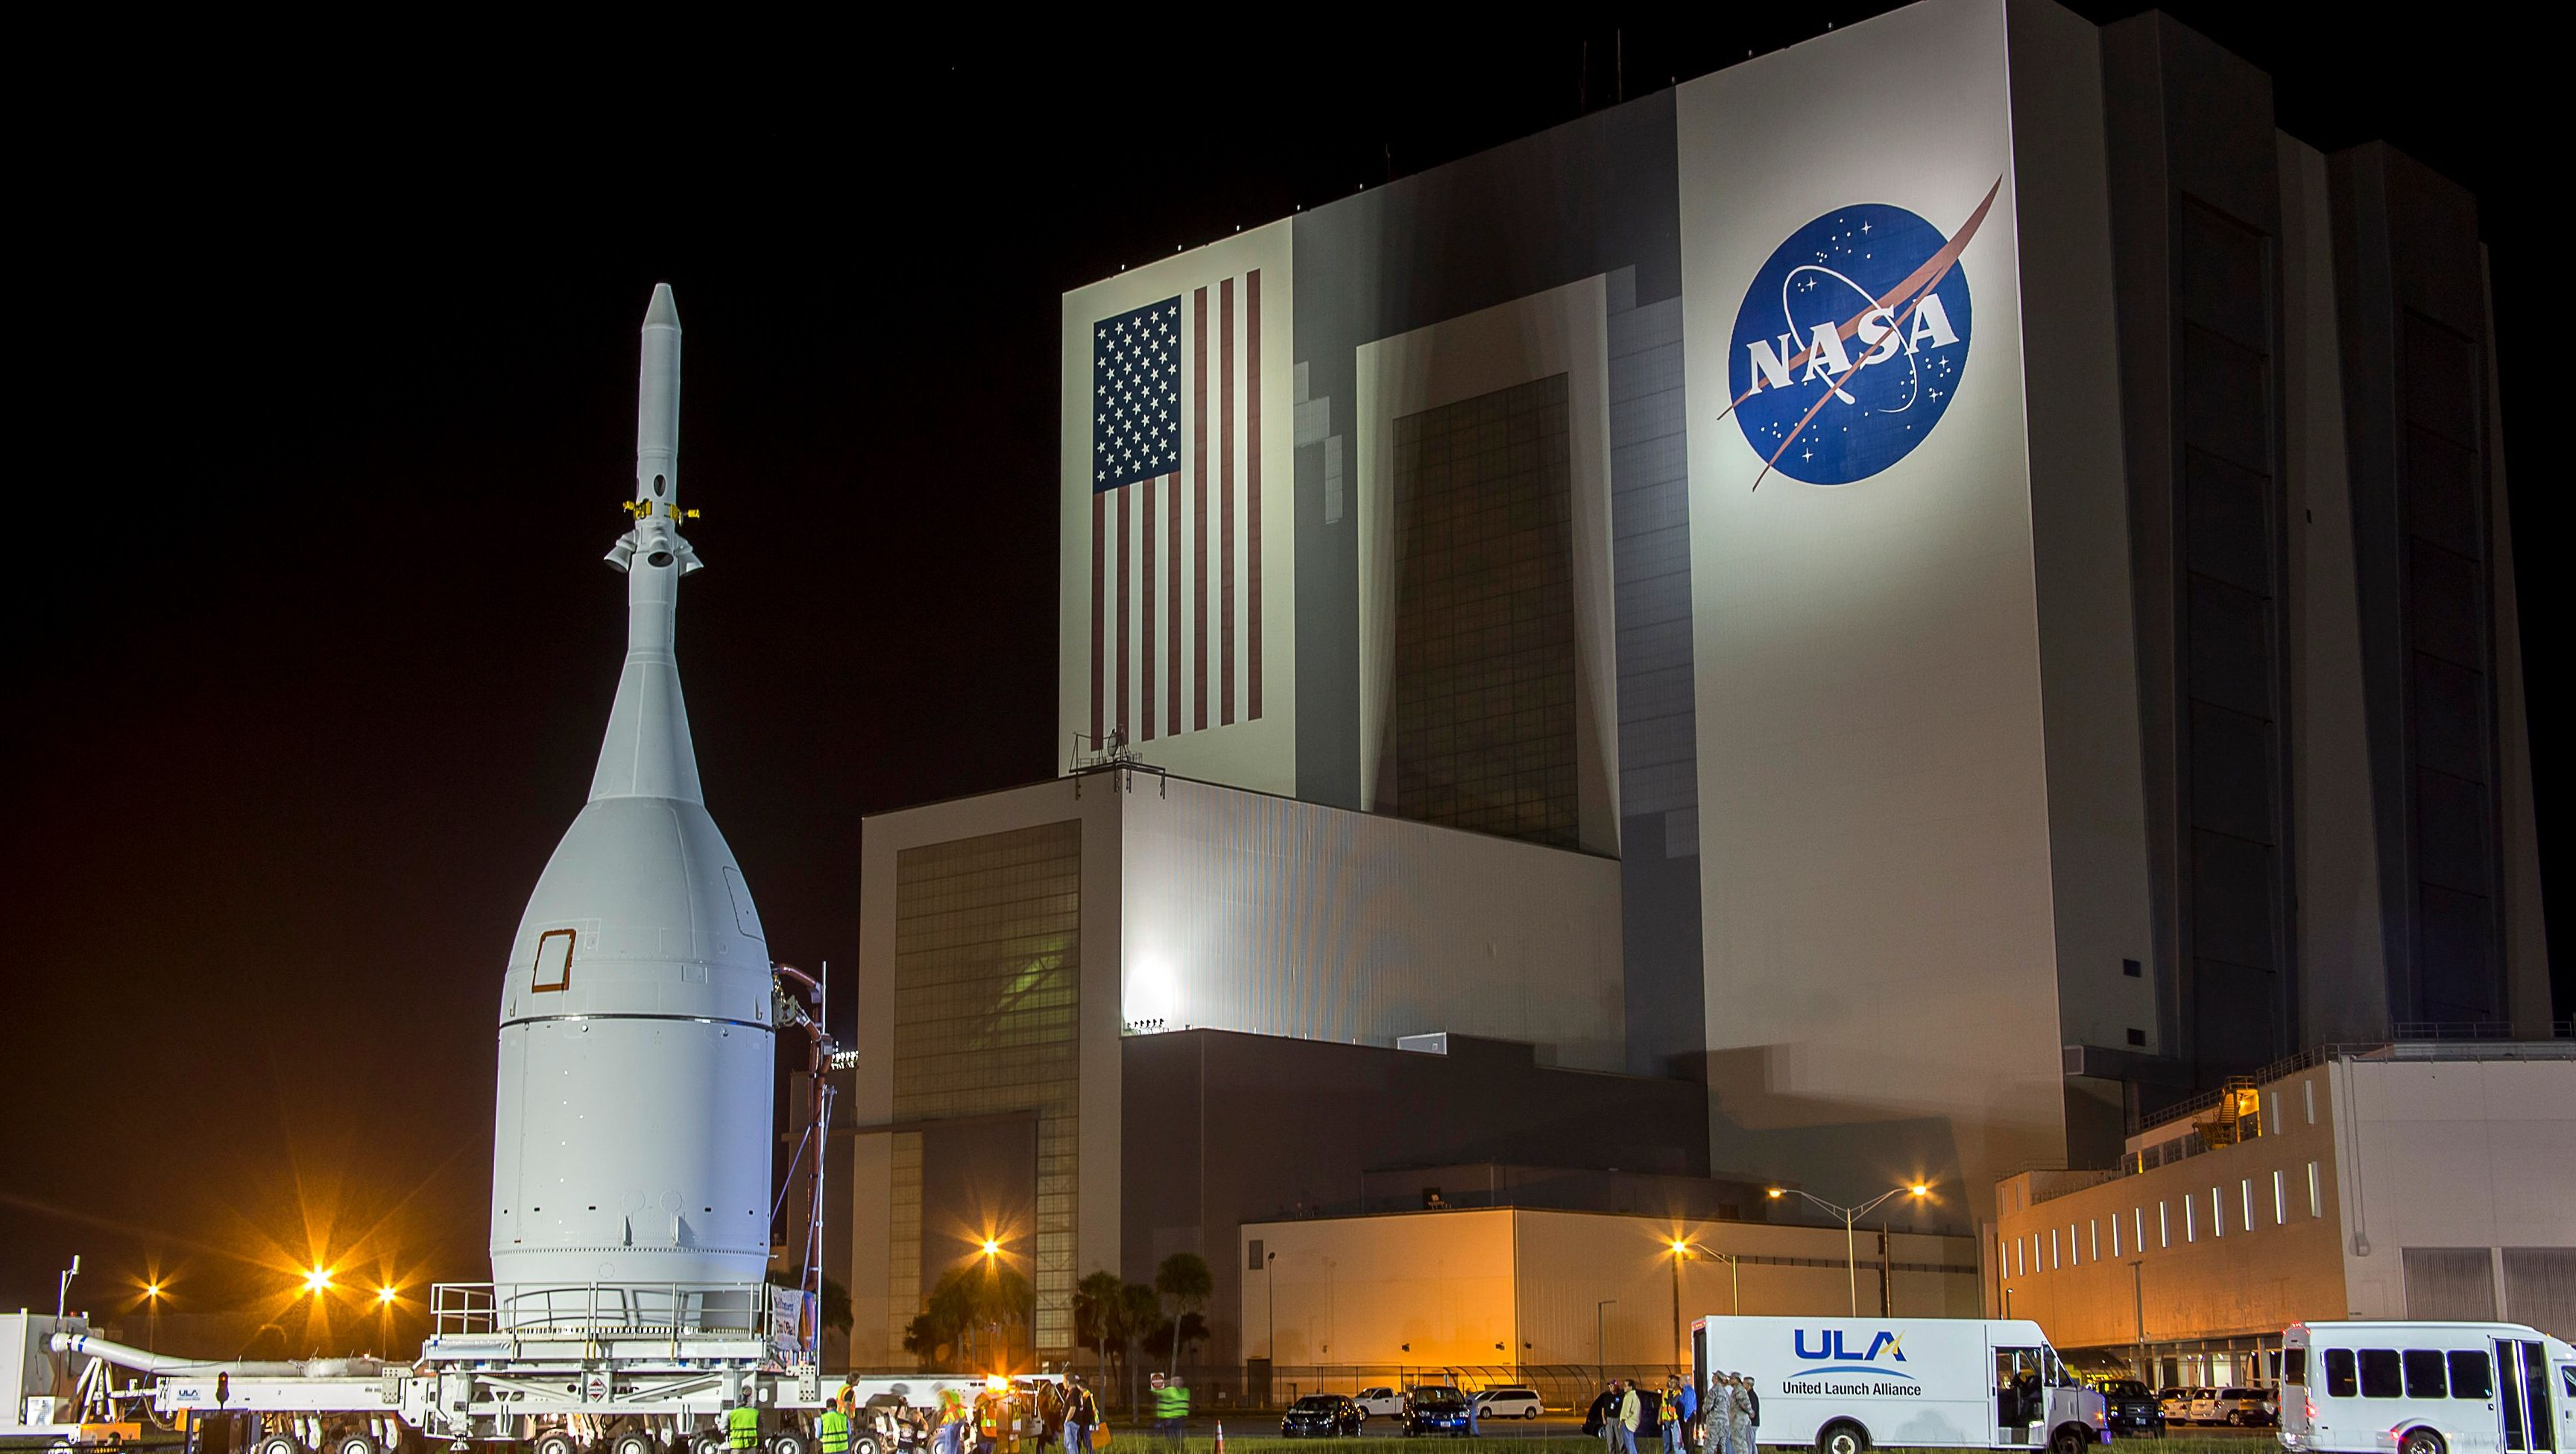 NASA is an attractive employer